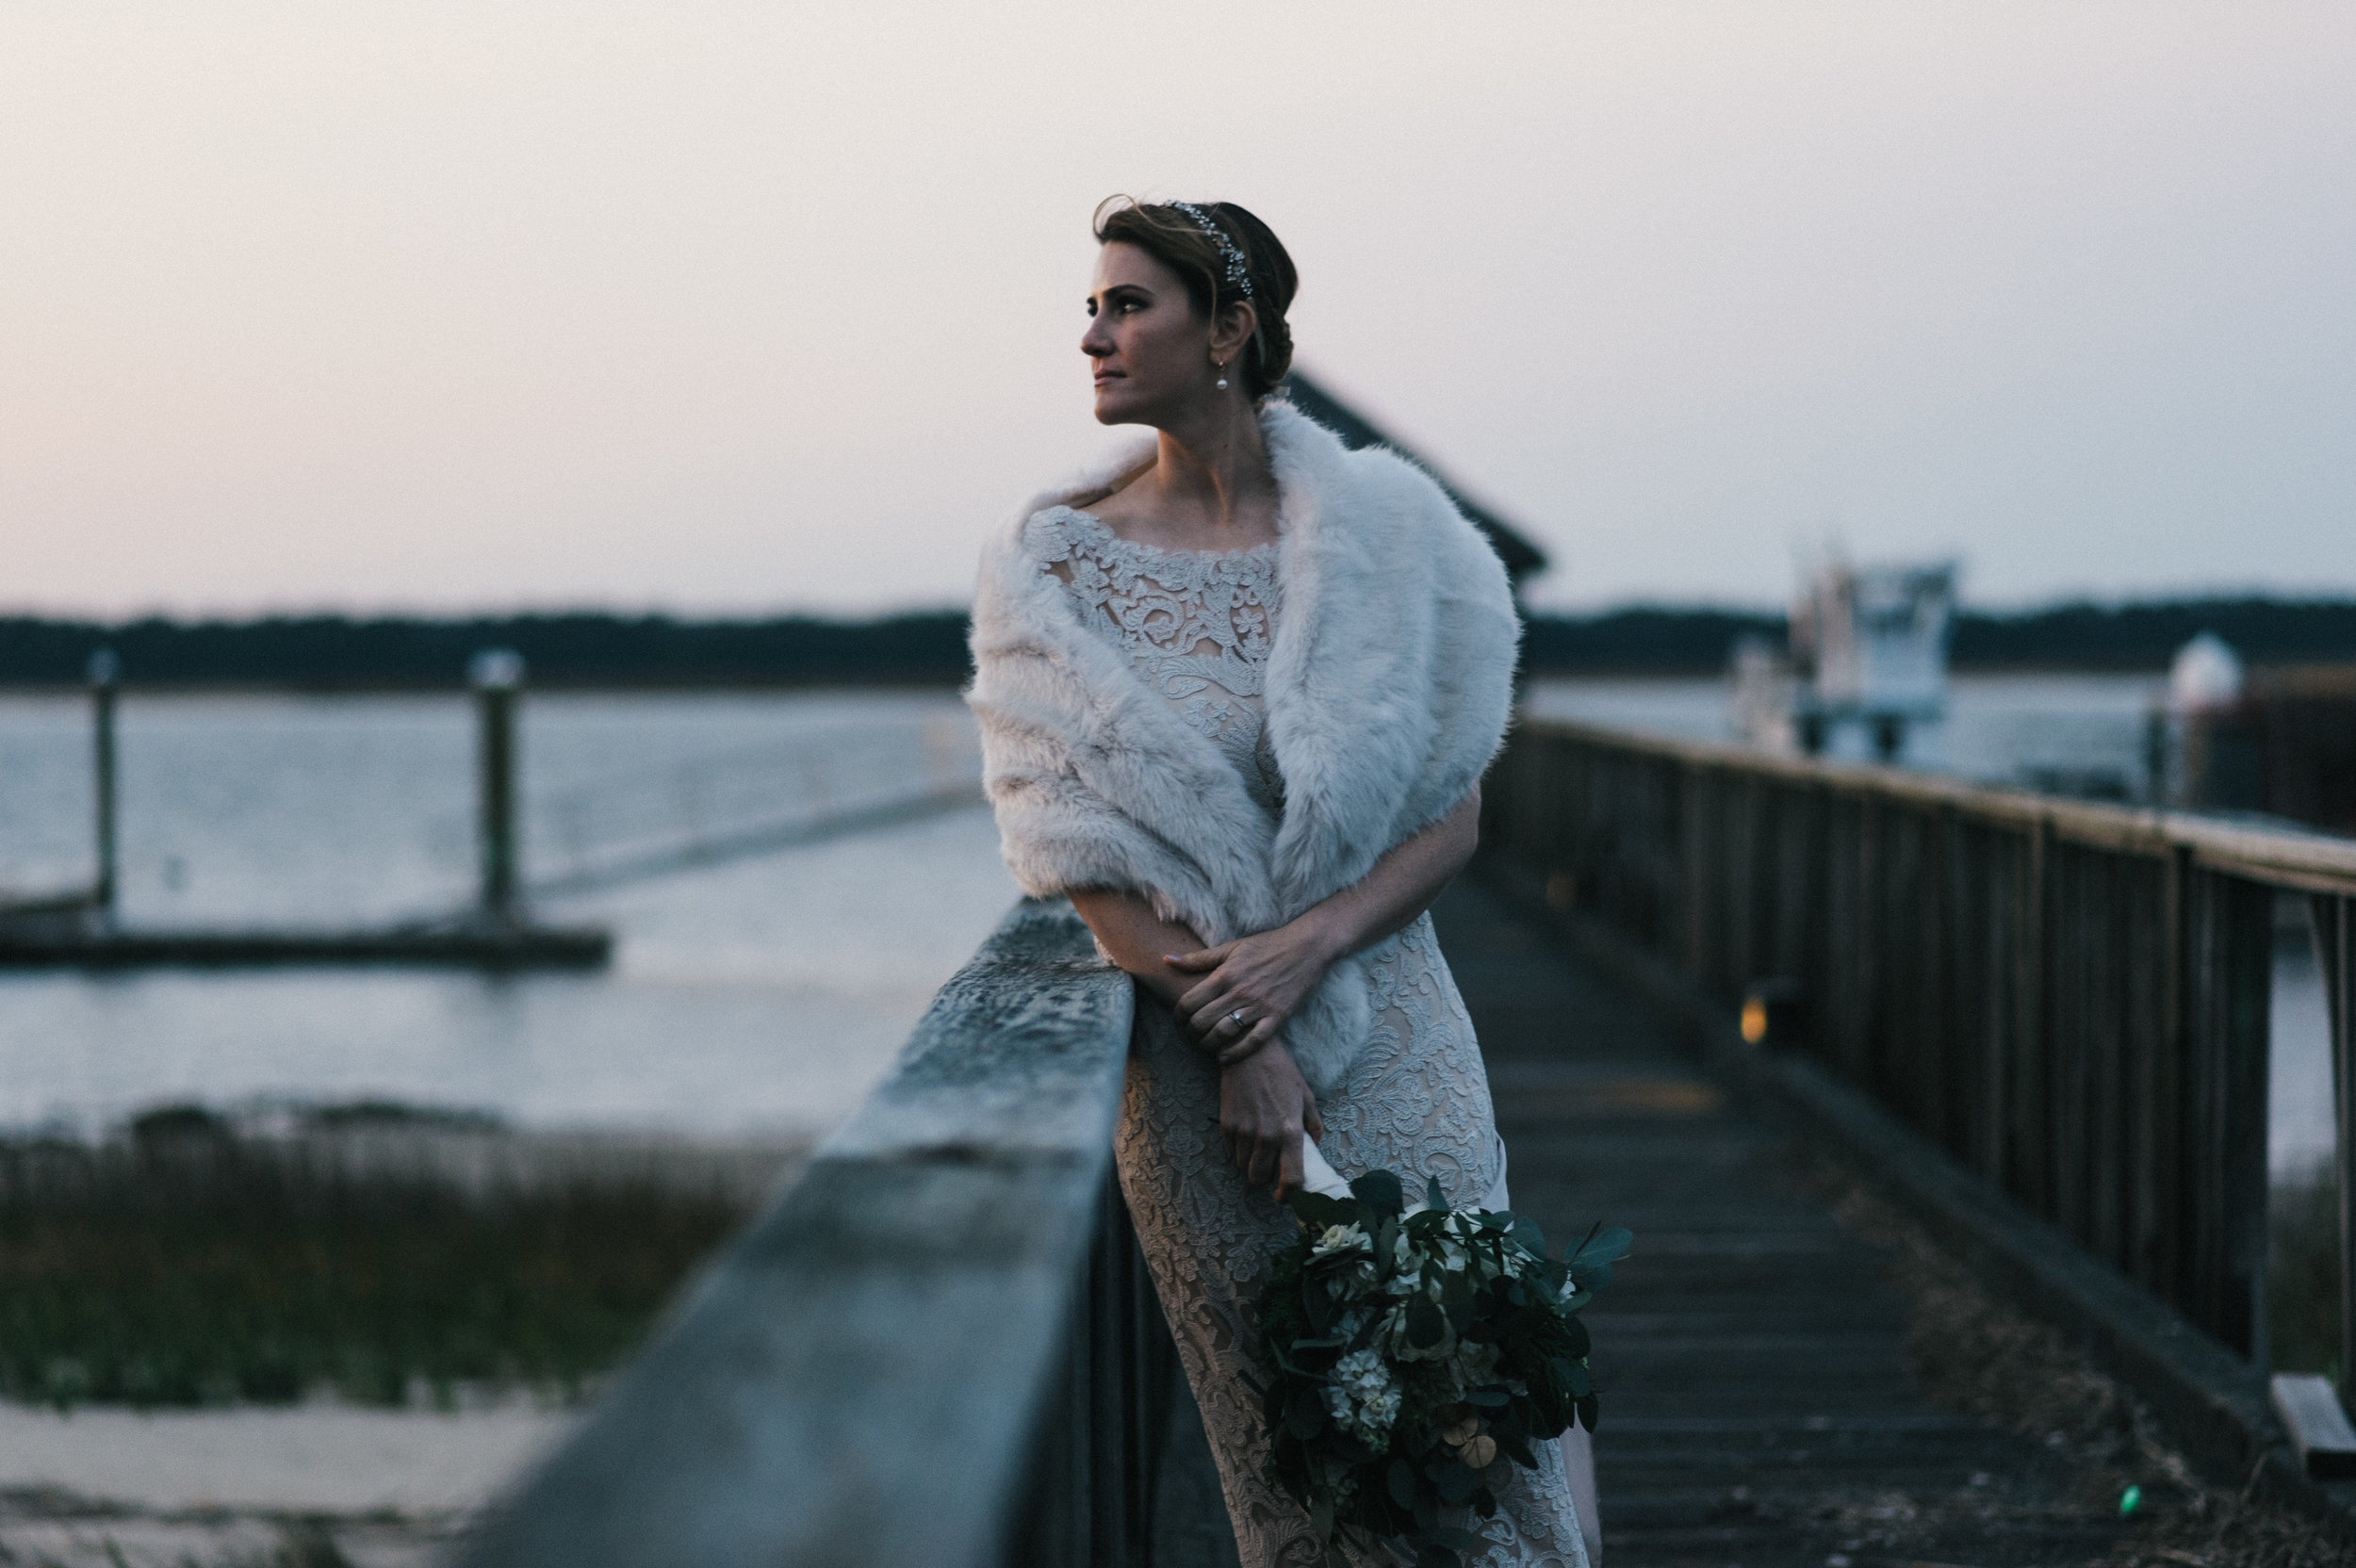 emily-and-david-daufuskie-island-wedding-december-wedding-meg-hill-photo- (646 of 728).jpg